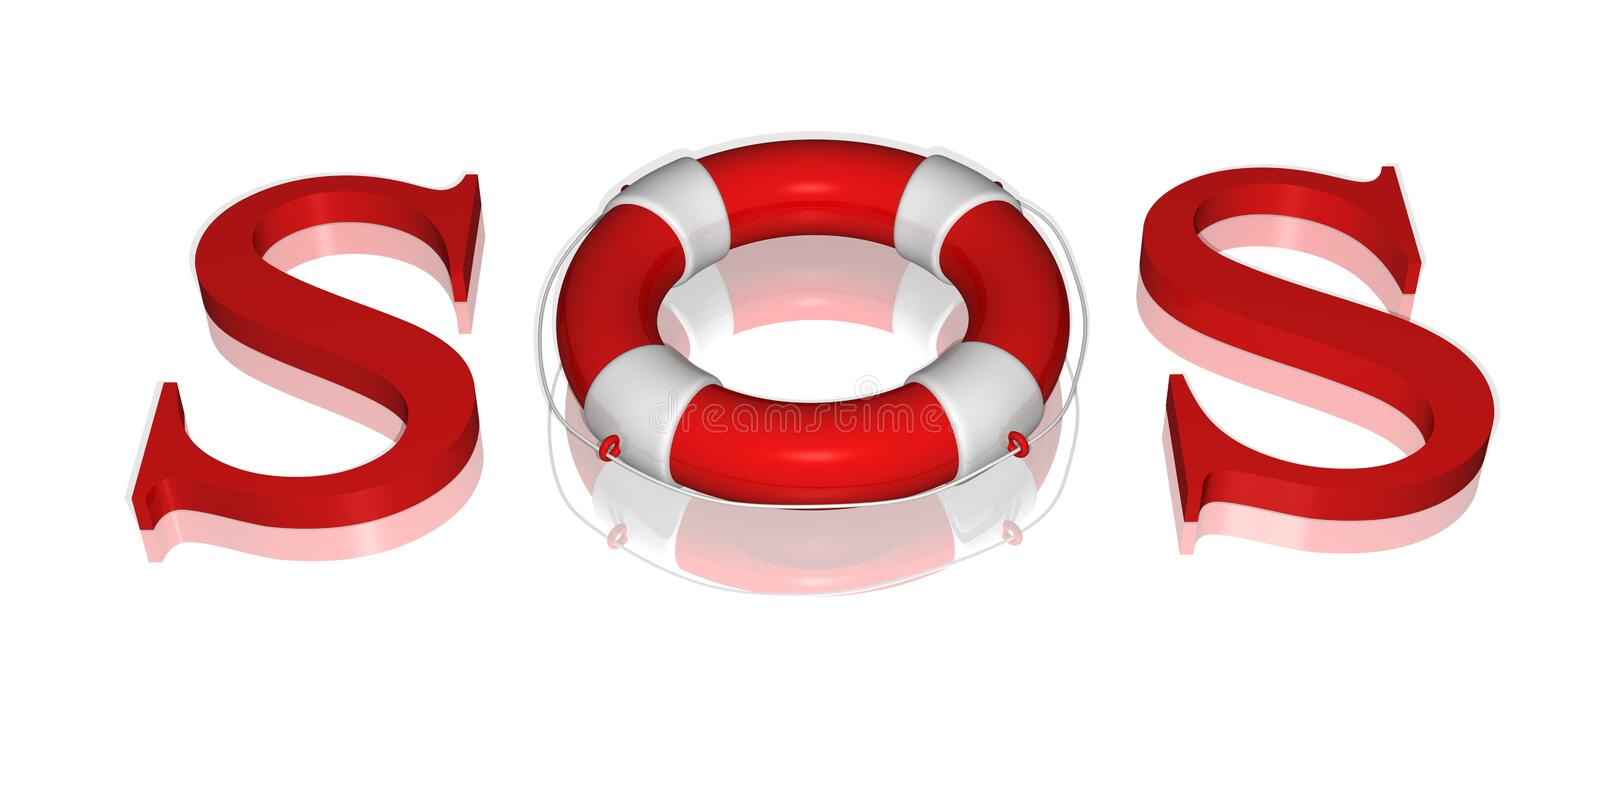 Signal SOS text by life buoy